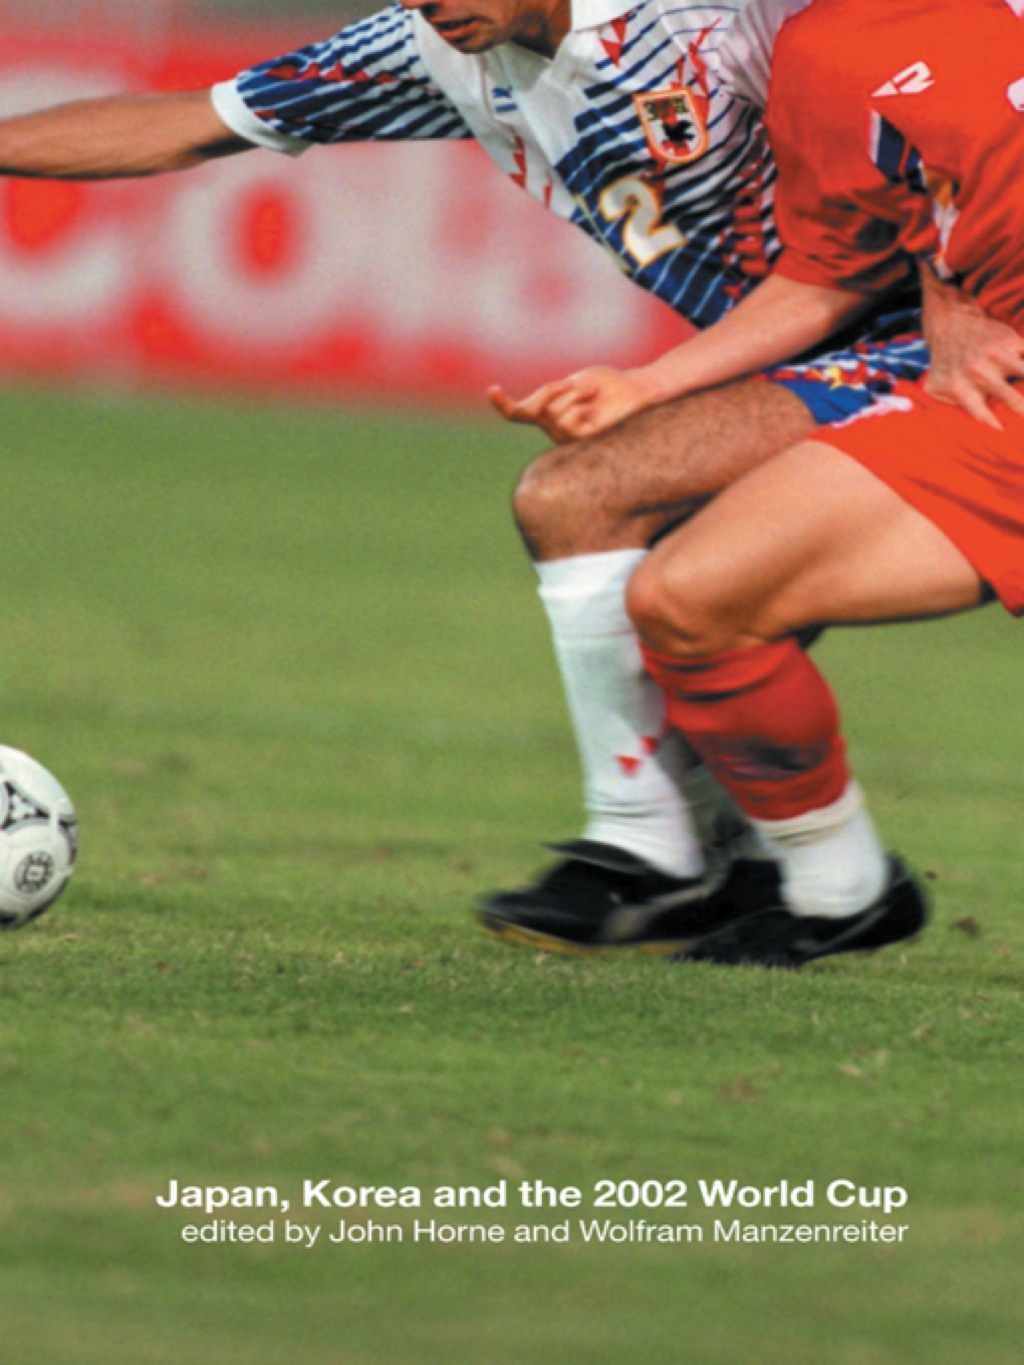 Japan, Korea and the 2002 World Cup (ebook) eBooks